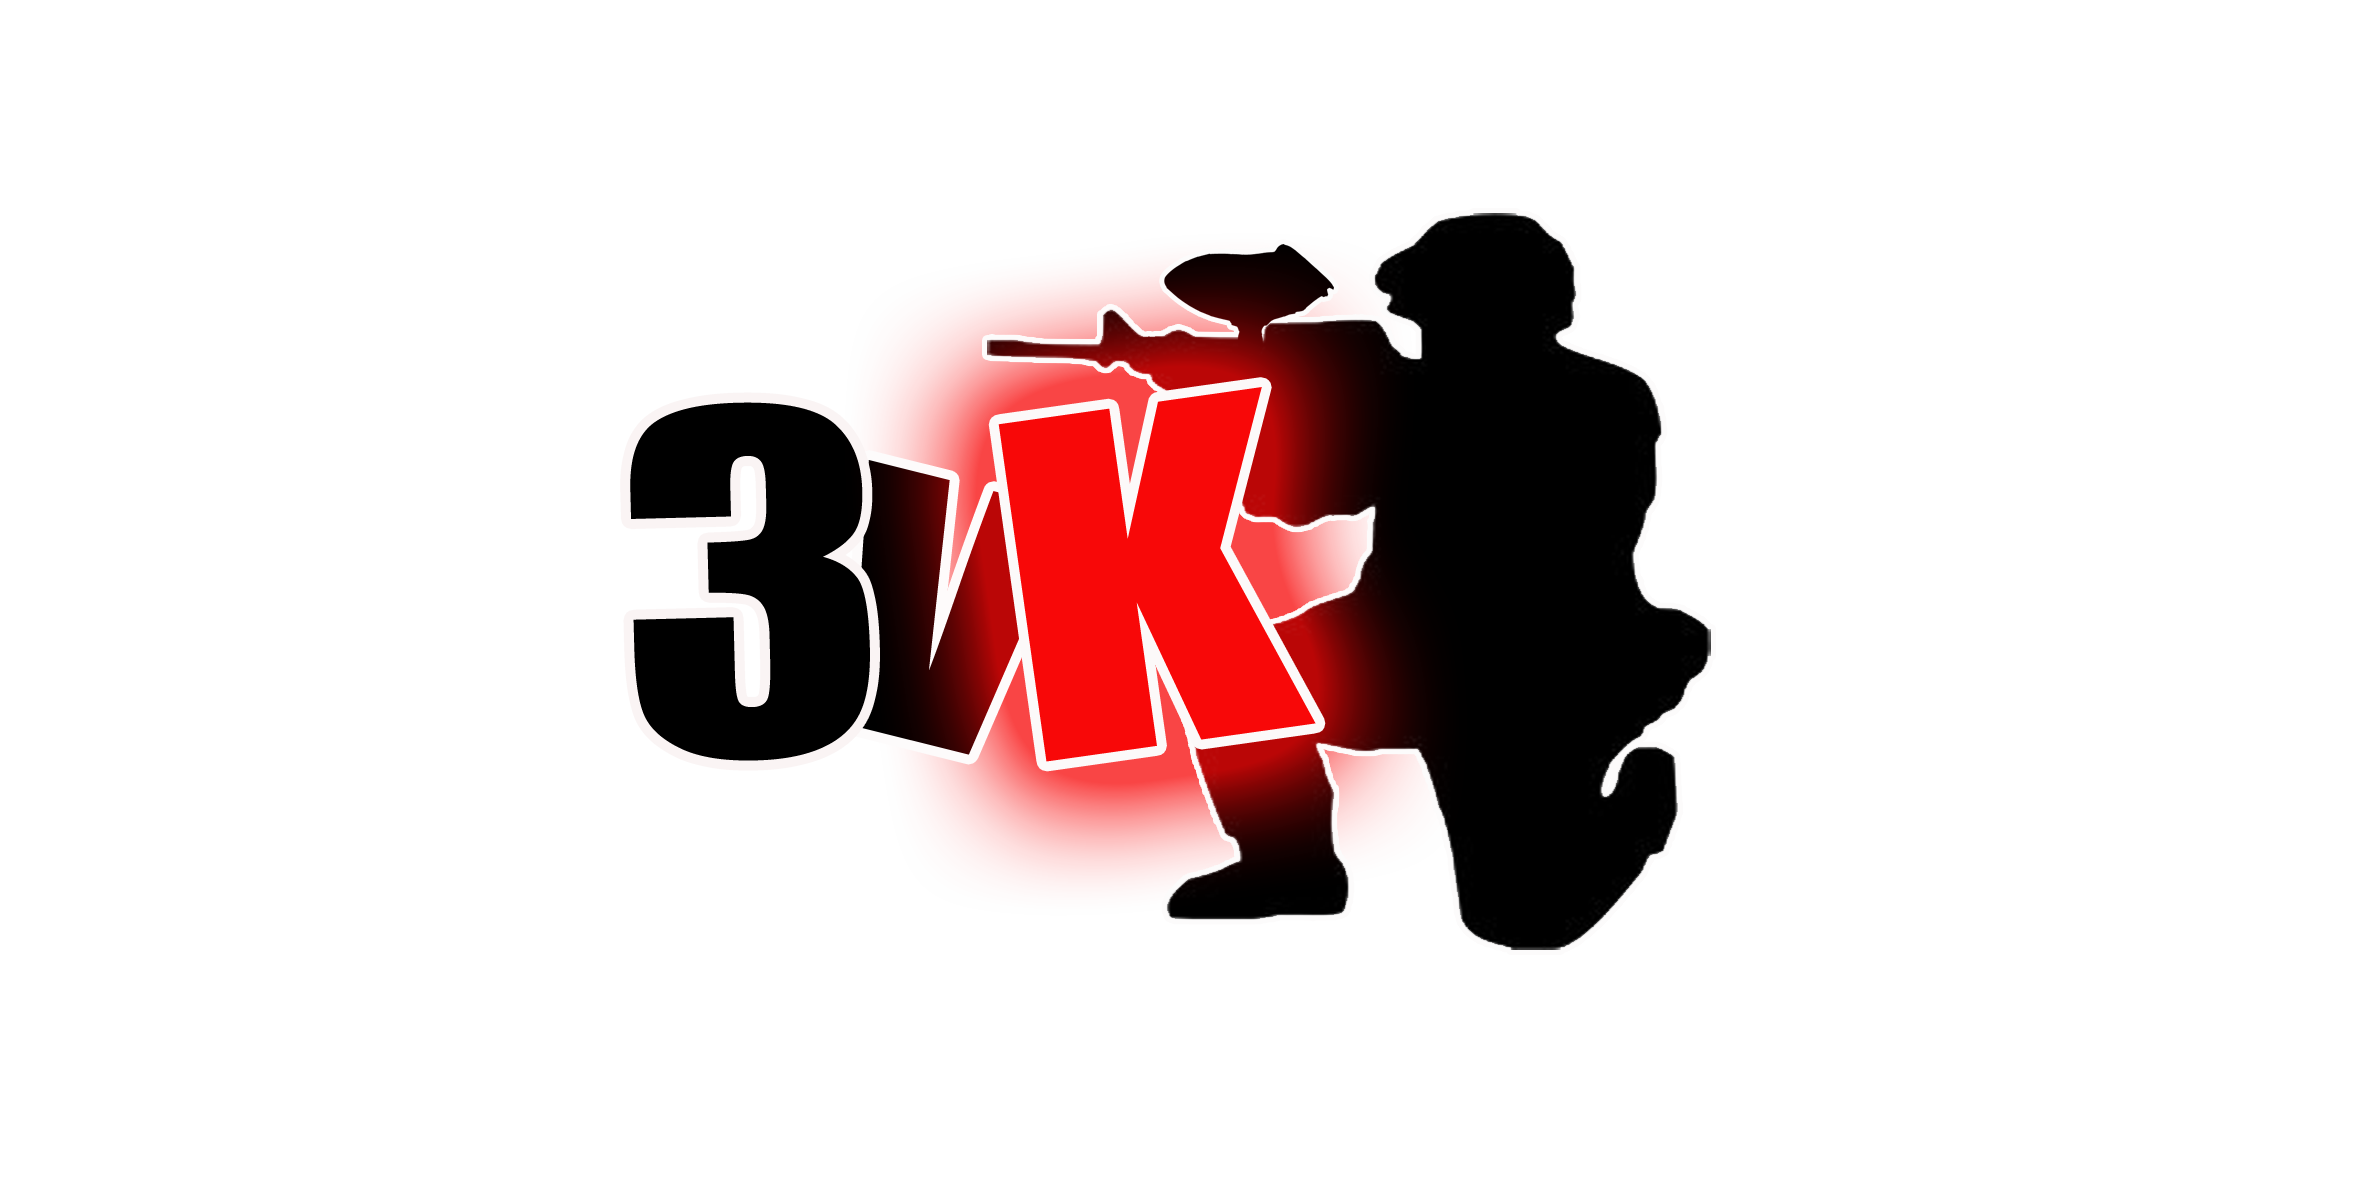 3vK paintball